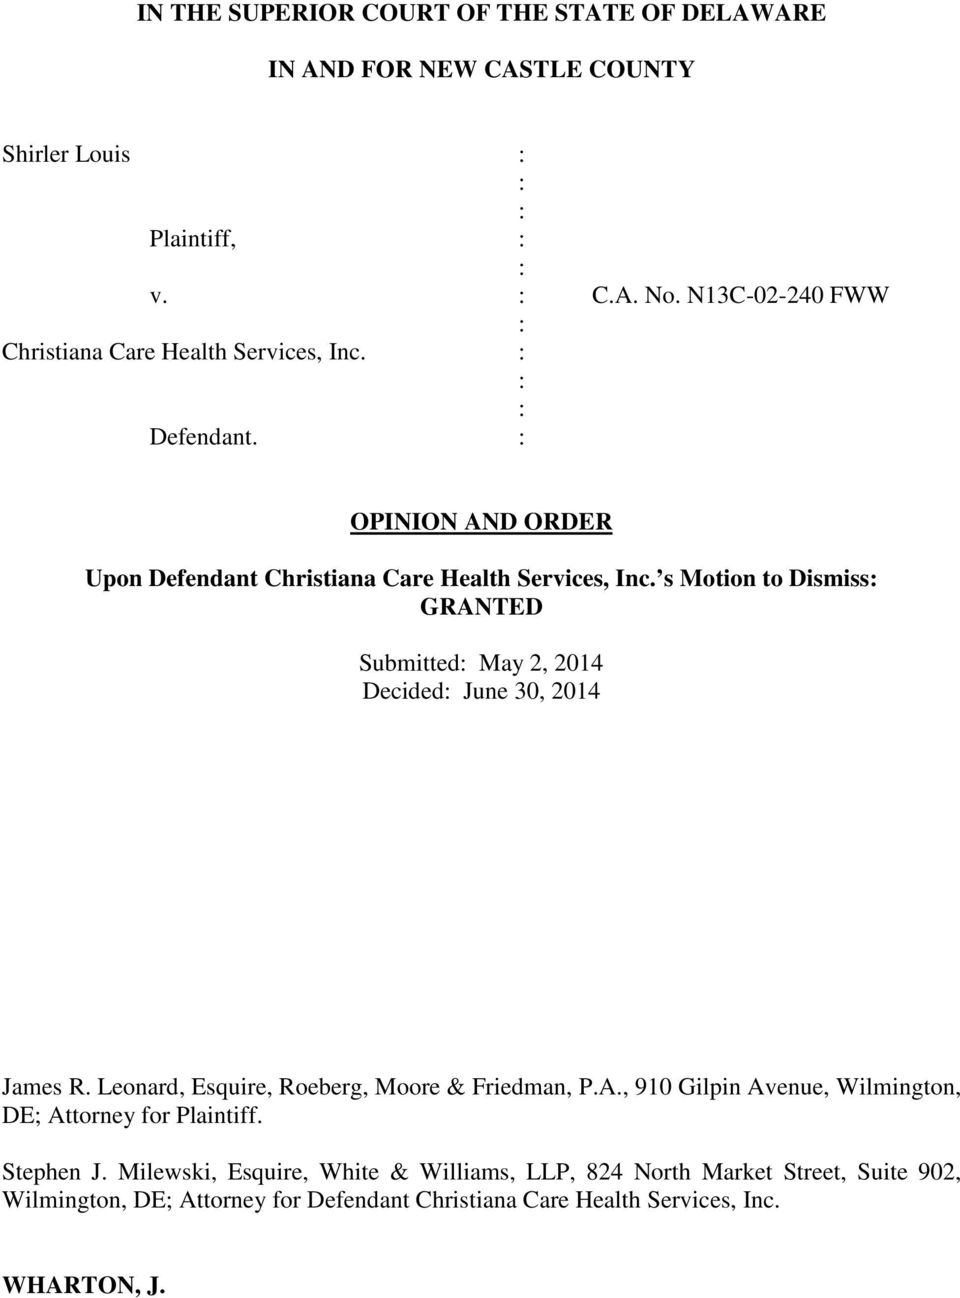 s Motion to Dismiss GRANTED Submitted May 2, 2014 Decided June 30, 2014 James R. Leonard, Esquire, Roeberg, Moore & Friedman, P.A., 910 Gilpin Avenue, Wilmington, DE; Attorney for Plaintiff.